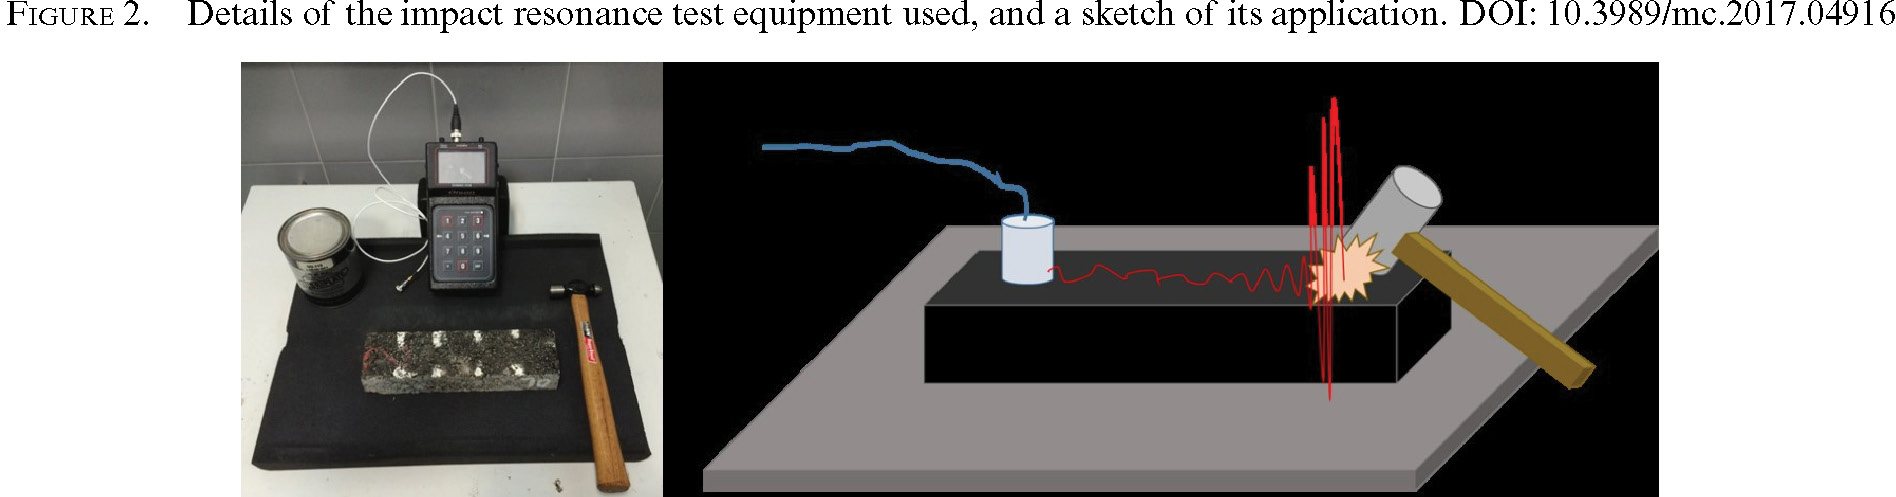 Analysis of the sensitivity of the impact resonance frequency test